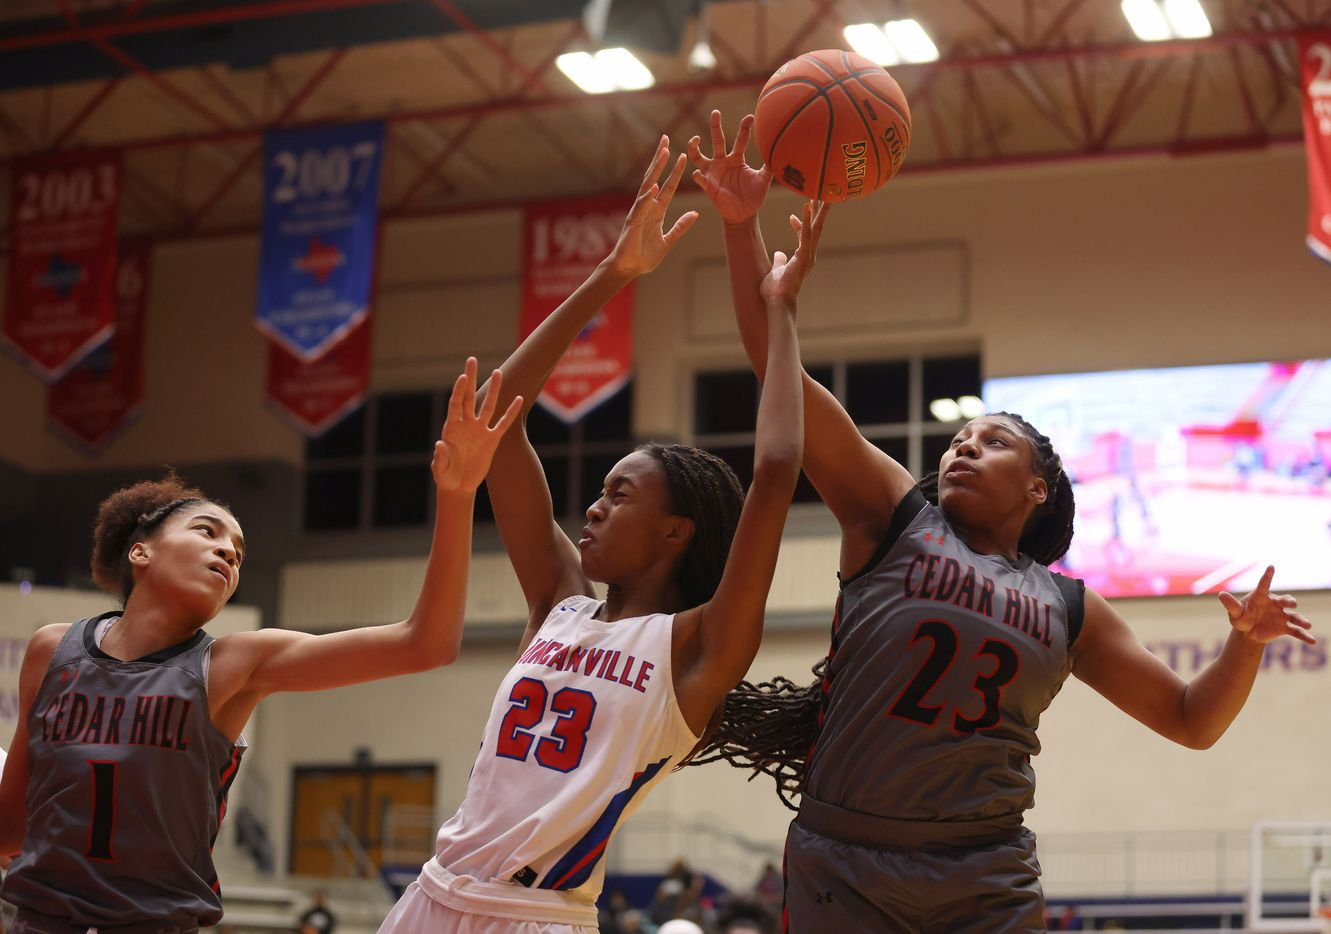 Duncanville's Kiersten Johnson (23), Cedar Hill's Jadyn Atchison (1) and Cedar Hill's Theasia Ebron (23) go after a rebound during the first half of play at Sandra Meadows Arena at Duncanville High School on Tuesday, January 12, 2021 in Dallas. (Vernon Bryant/The Dallas Morning News)